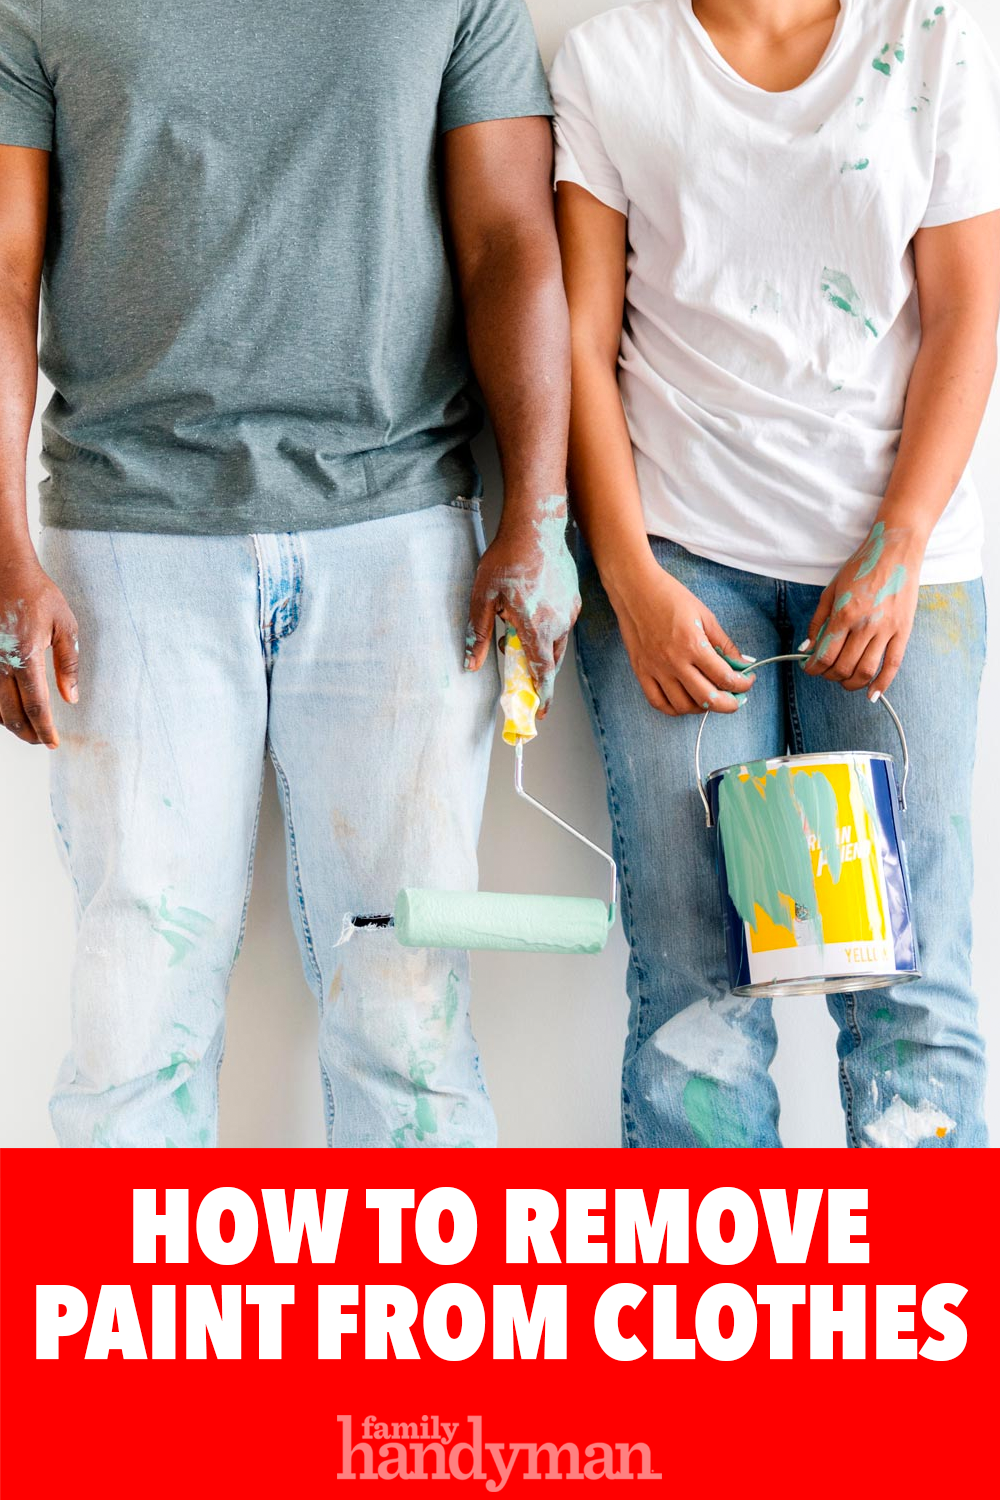 Can You Get Acrylic Paint Out Of Clothes How To Remove Paint From Clothes Remove Paint From Clothes Paint Remover Painting Walls Tips